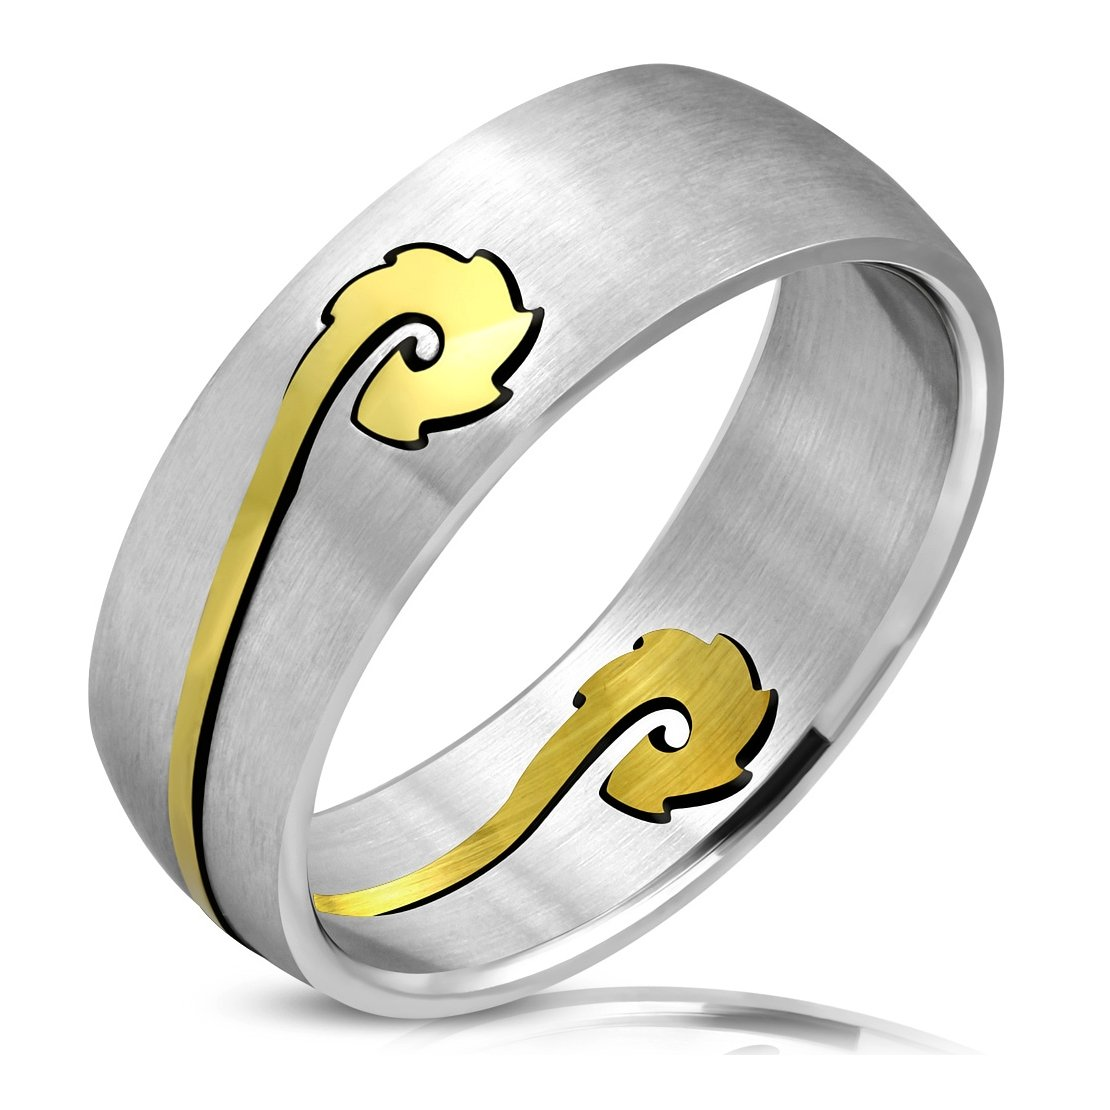 Stainless Steel Matte Finished 2 Color Cut-out Tribal Vine Half-Round Band Ring